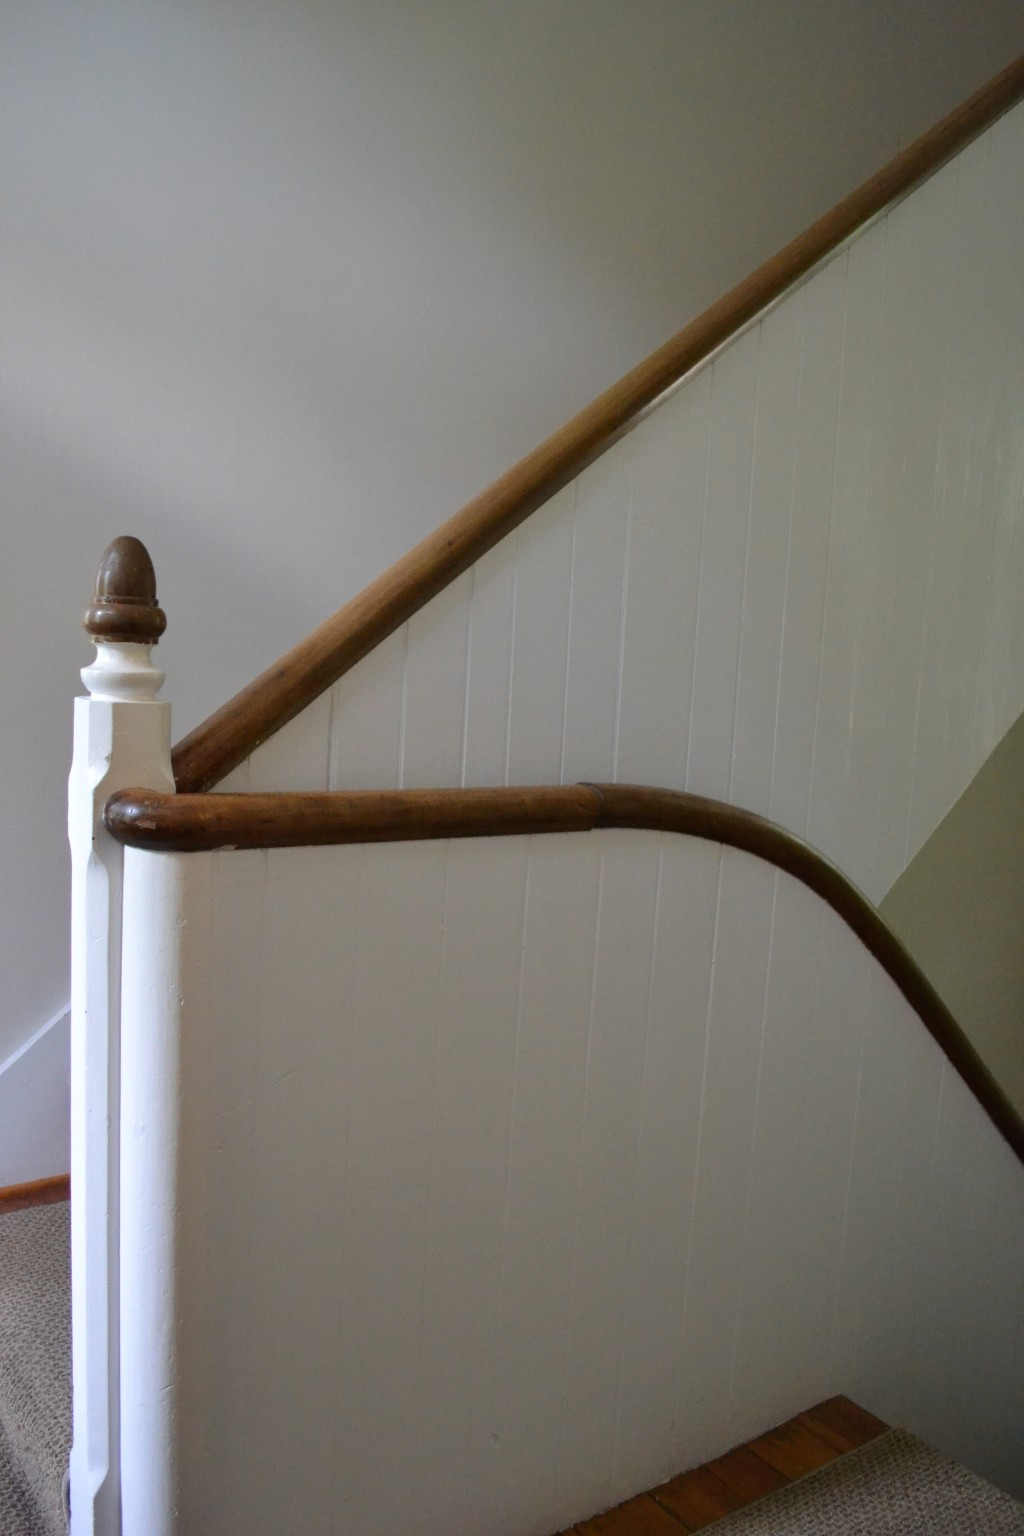 Exceptional detailing even in the back, servants' stairway.